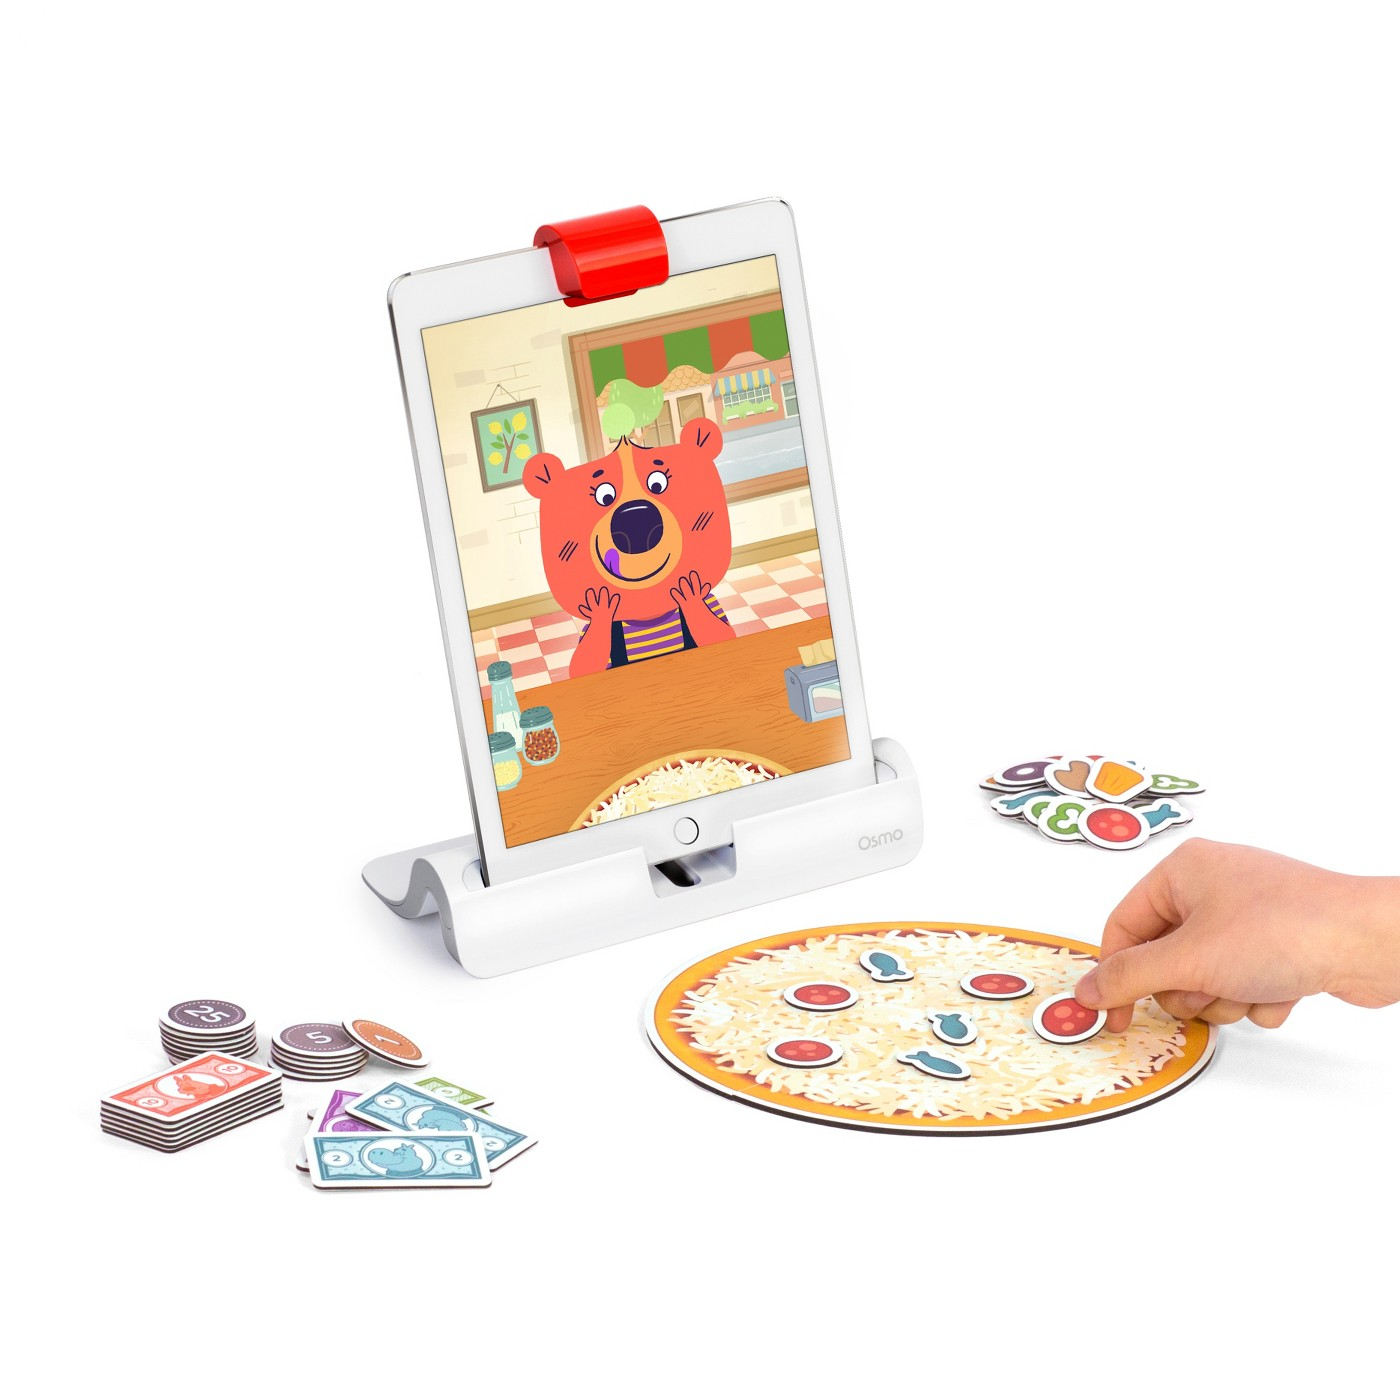 Osmo Pizza Co. Educational Game (Osmo iPad Base required) - image 2 of 4